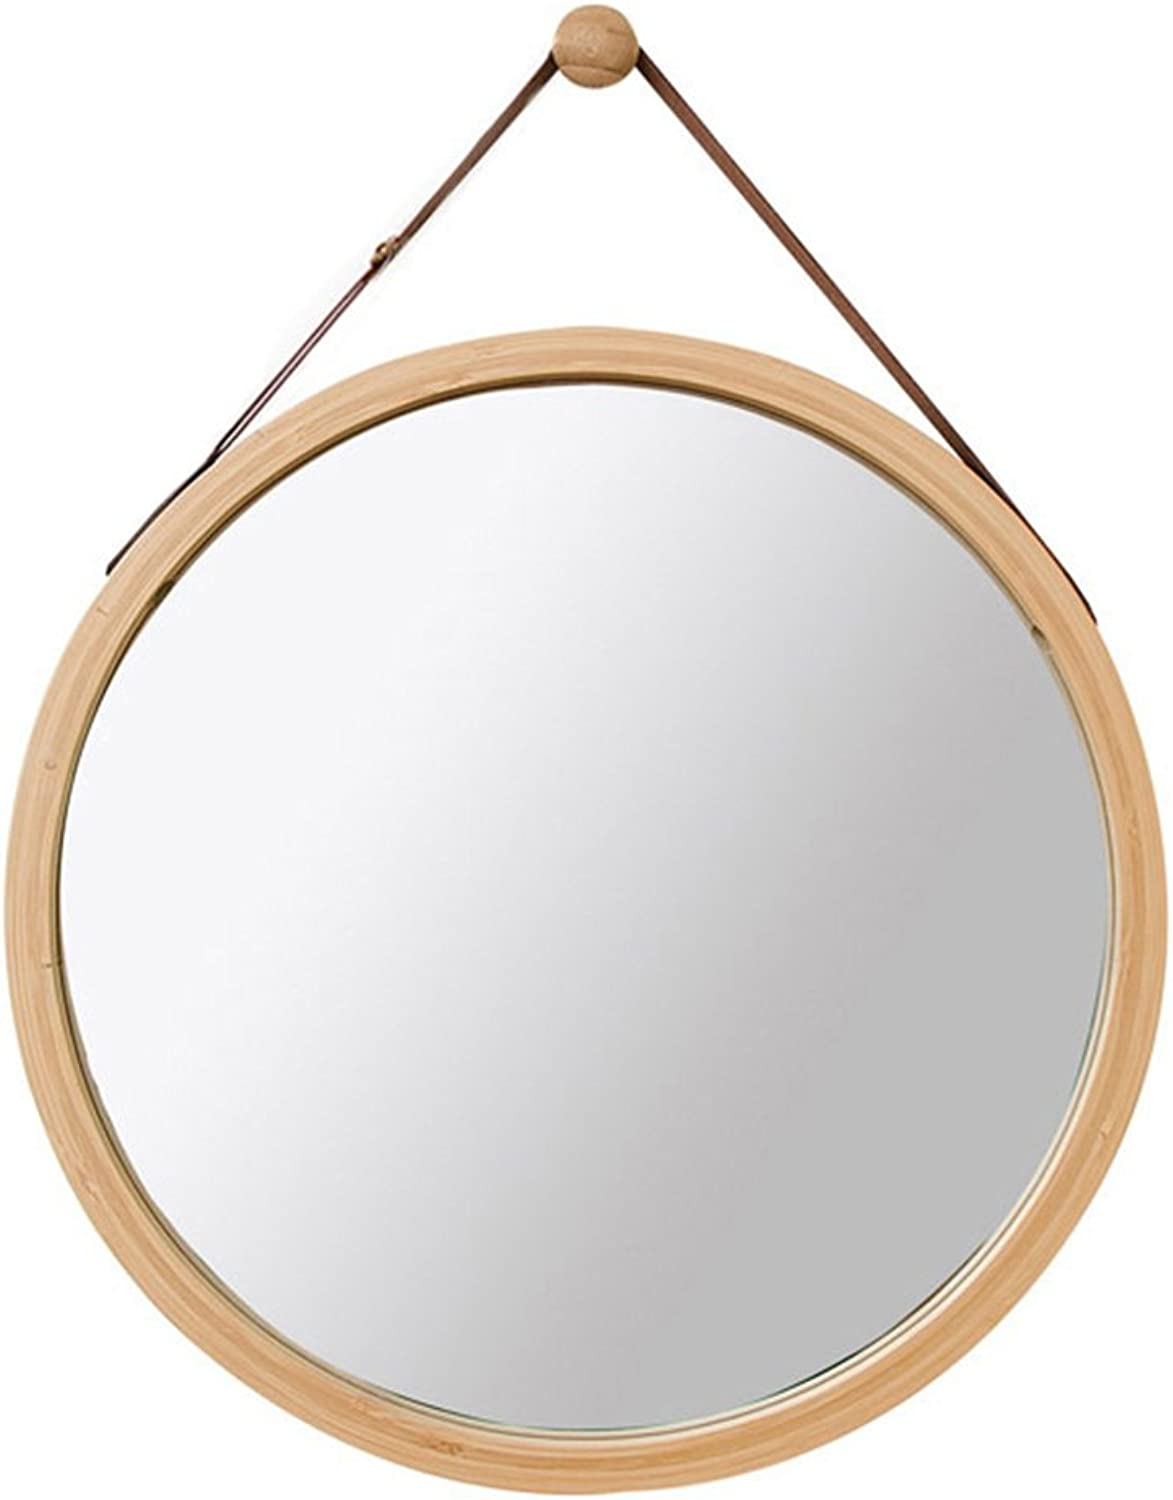 Round Wall Mounted Mirror Bathroom Mirror Dressing Mirror Toilet Mirror Bedroom Wooden Decorative Mirror Round Mirror with Rope (color   Yellow, Size   45cm45cm)